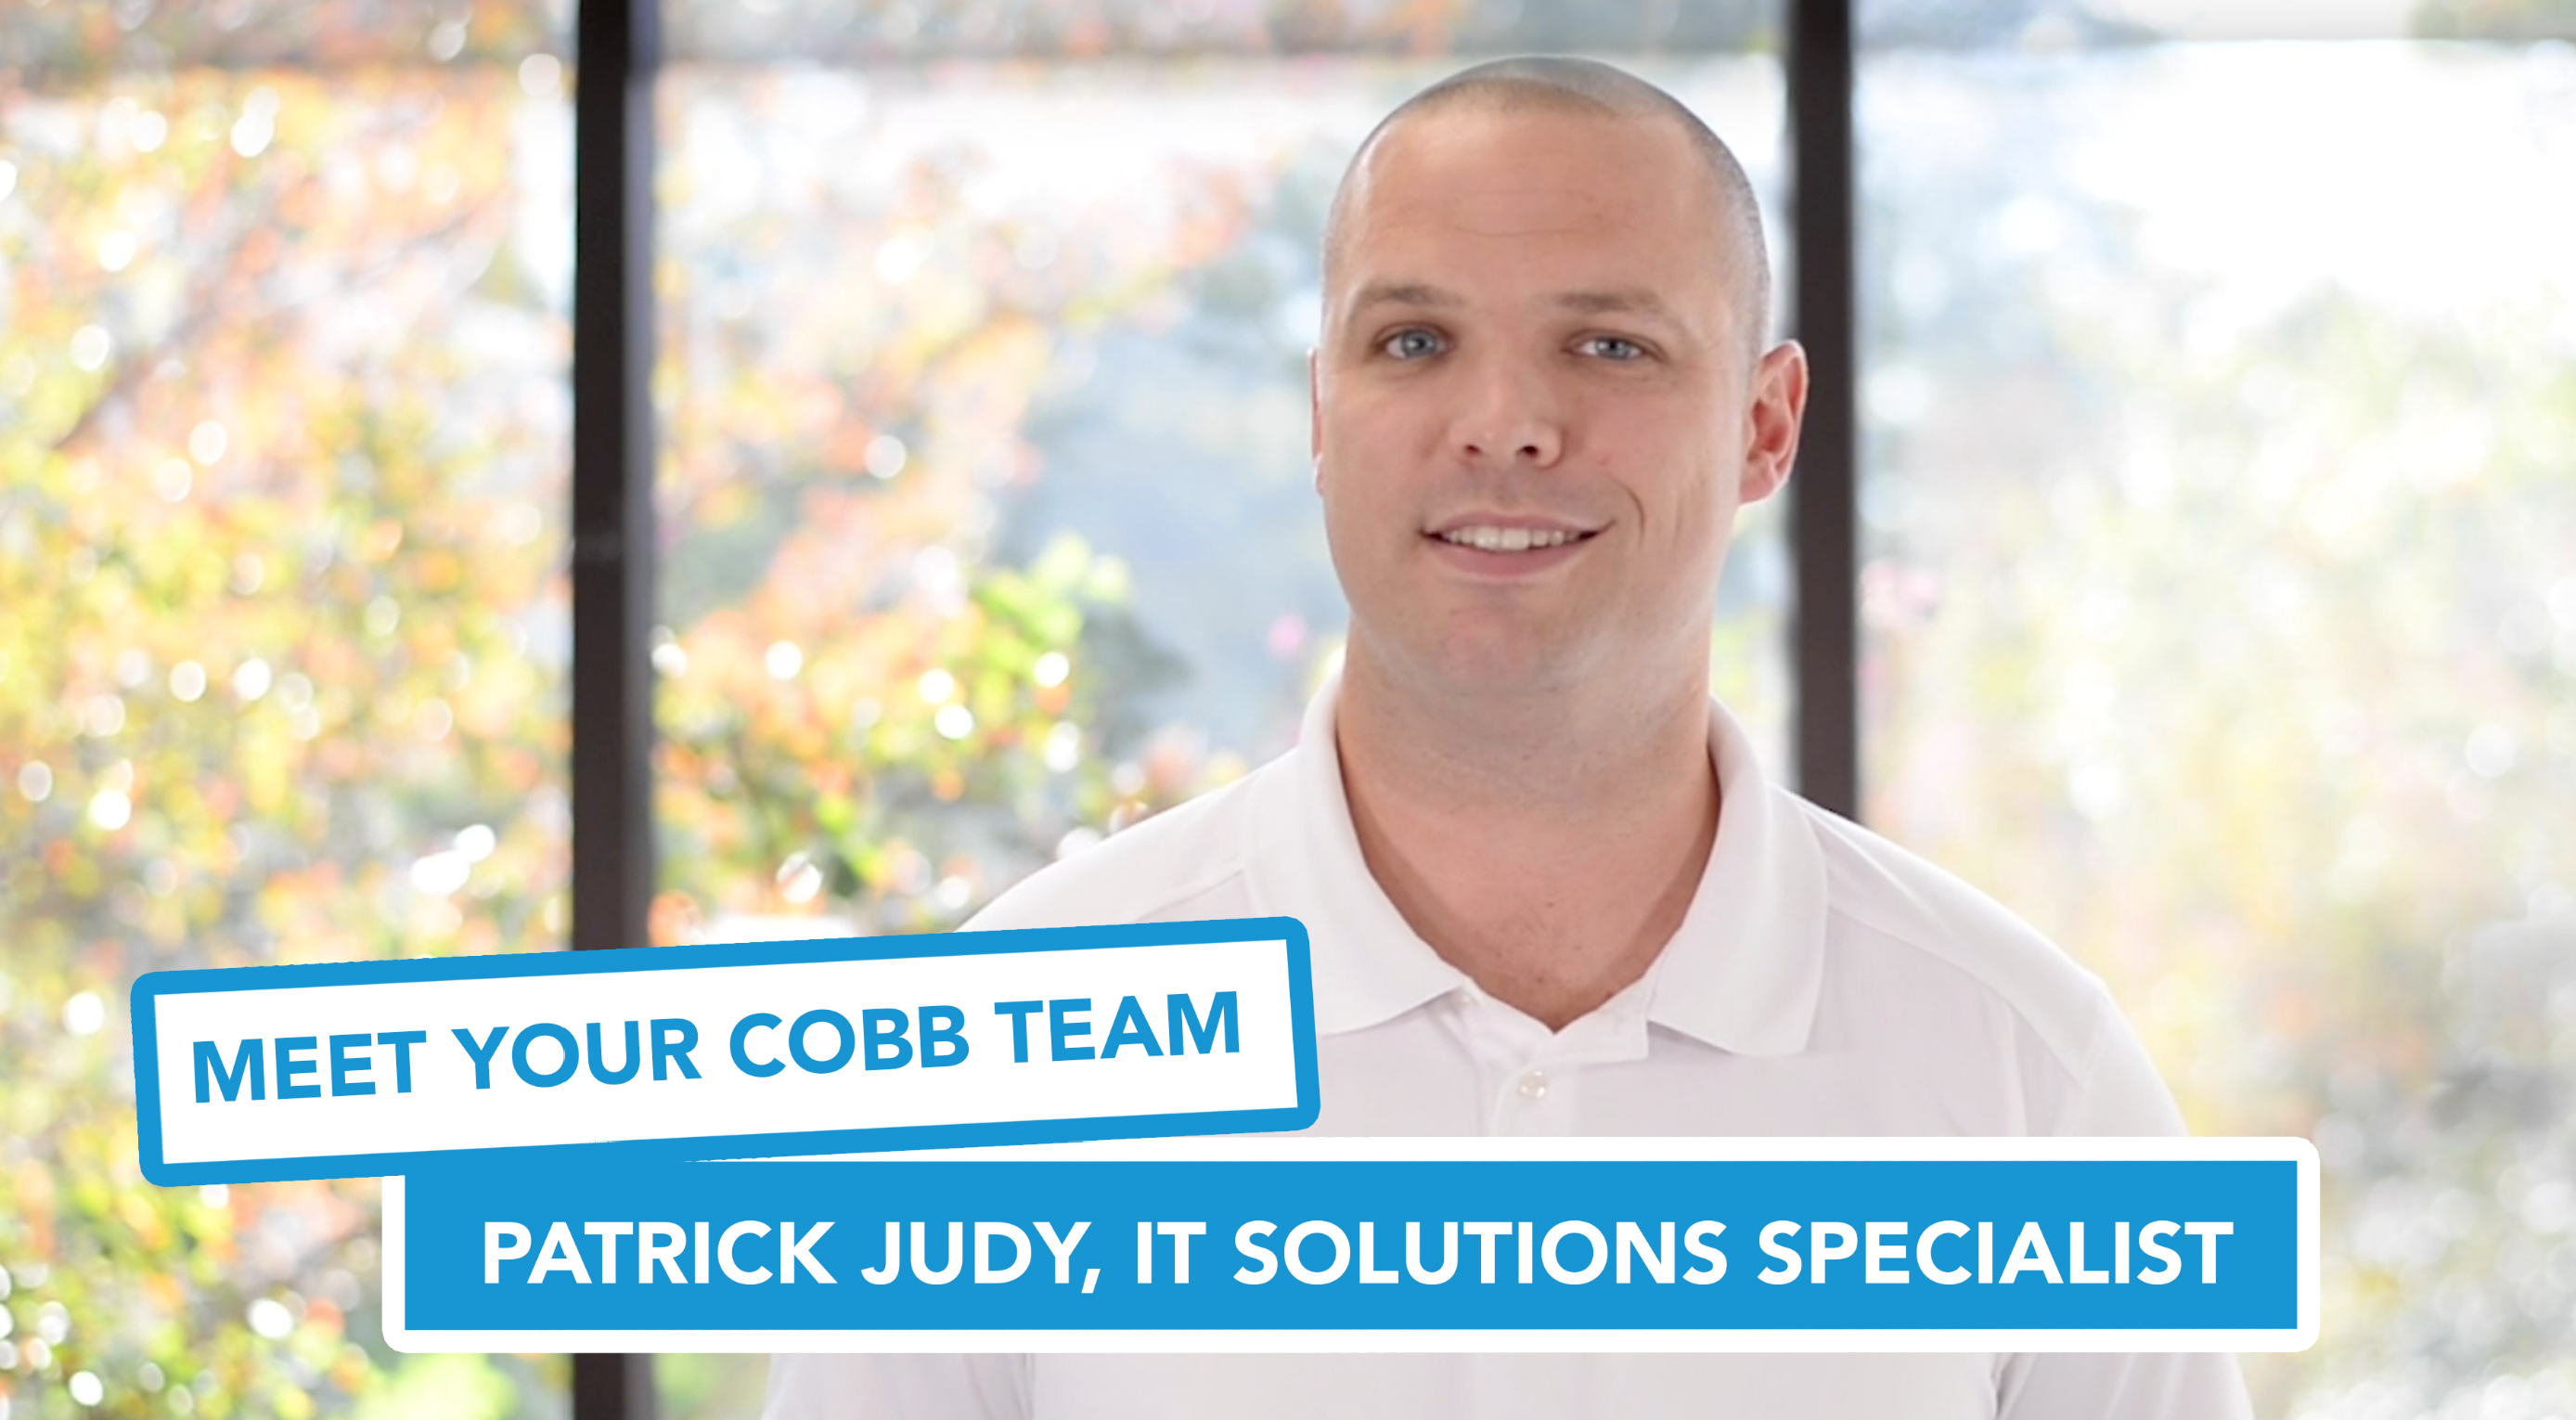 Meet Your Cobb Team -Patrick Judy, IT Solutions Specialist